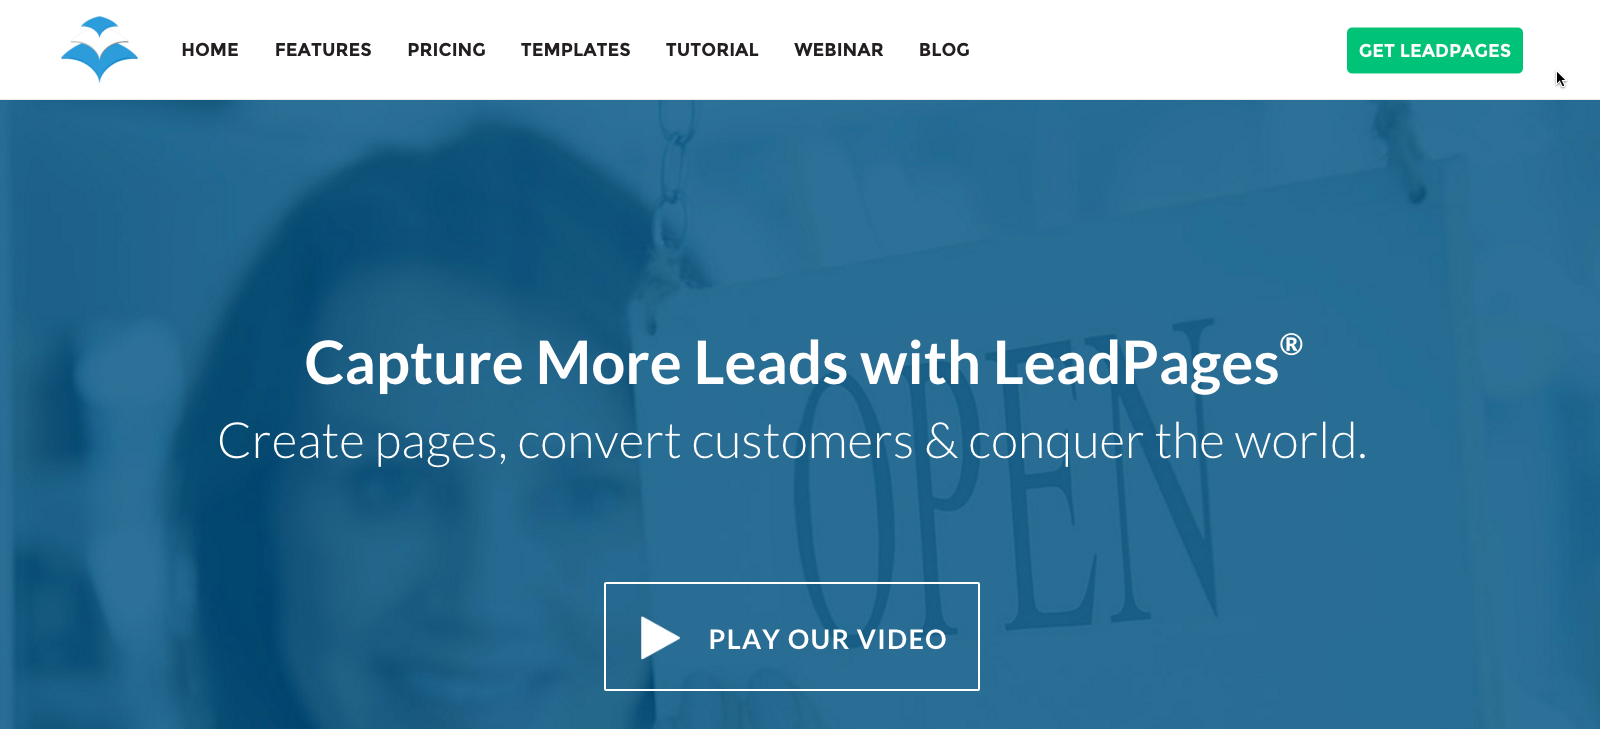 leadpages-2